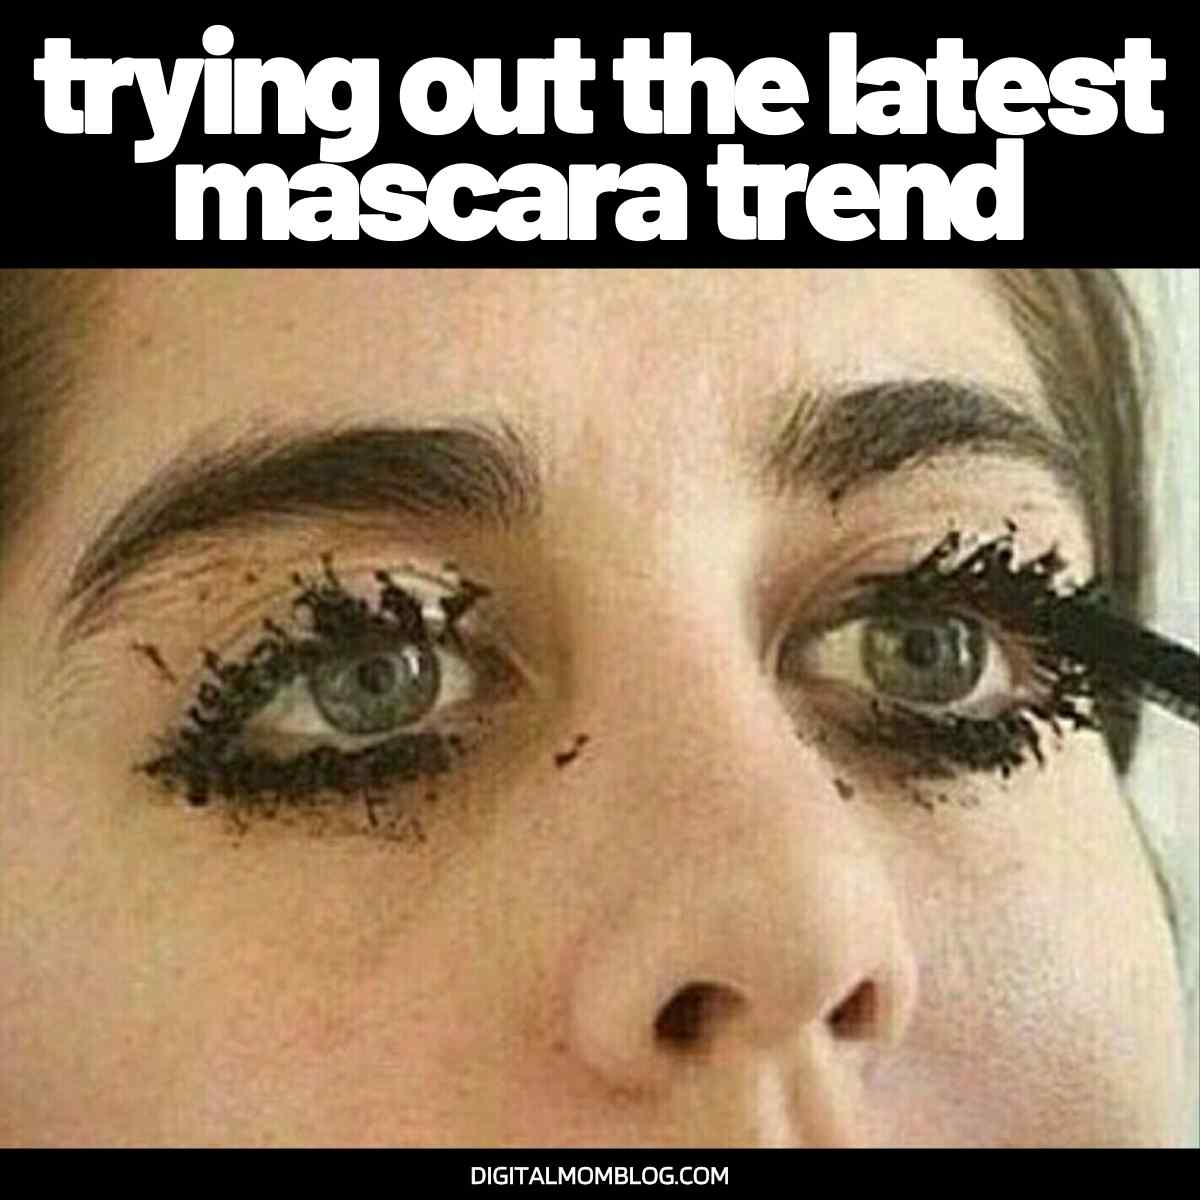 funny mascara meme – trying out the latest trend